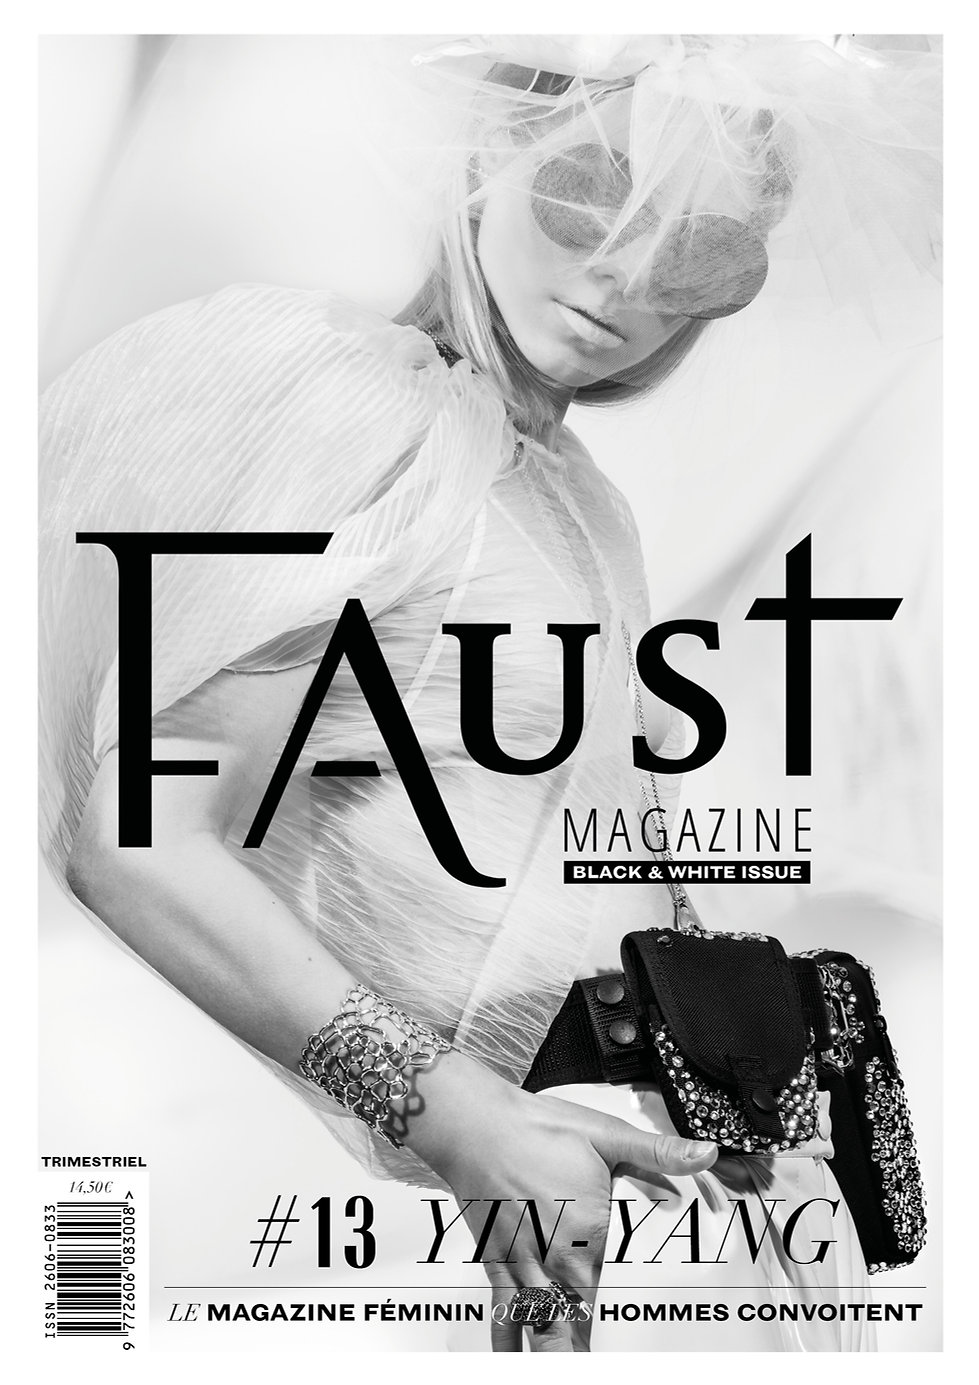 FAUST couverture.JPG